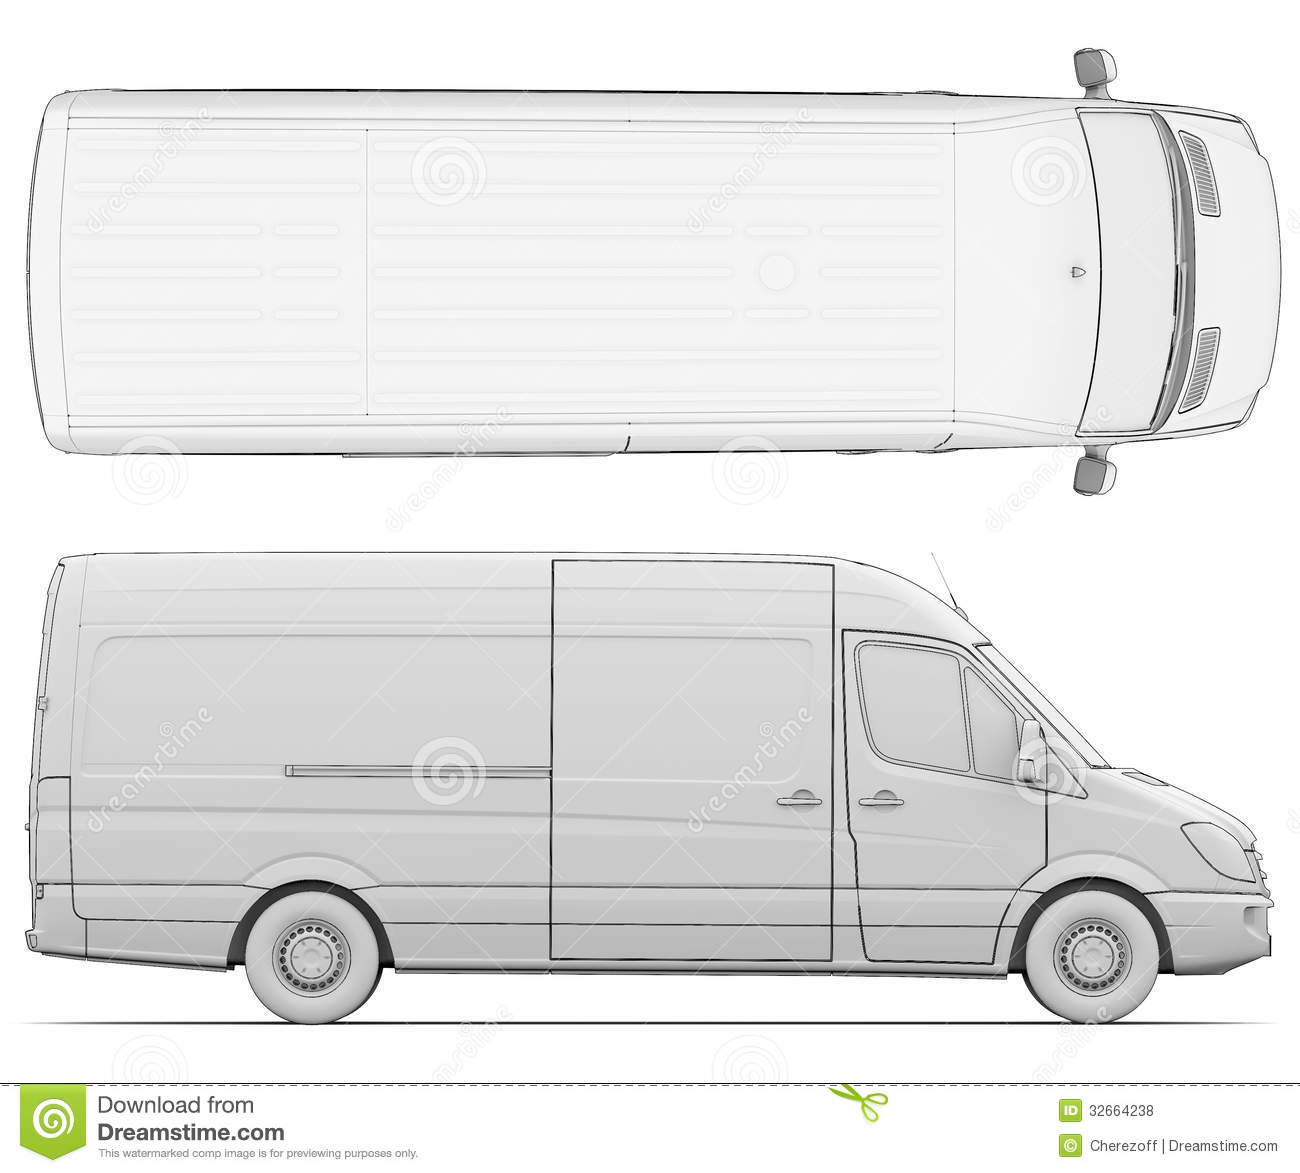 Line Art Xl 2008 : Sketch white van stock illustration of